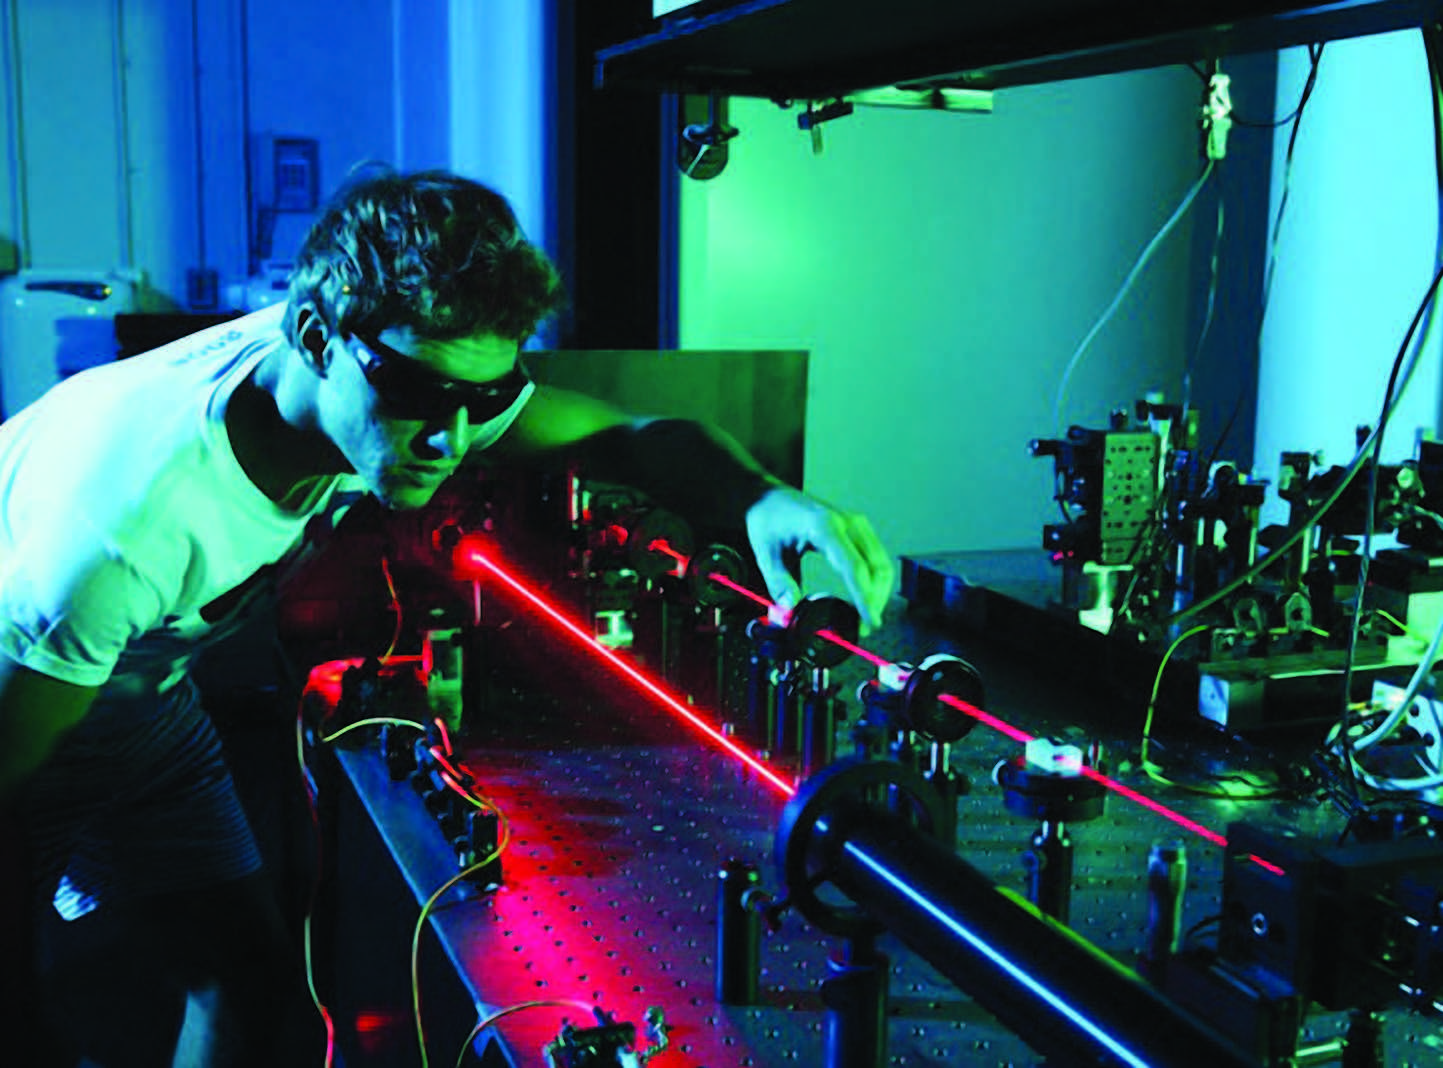 Quantum revolution: UK strategy outlines research into 6G smartphones and quantum computers